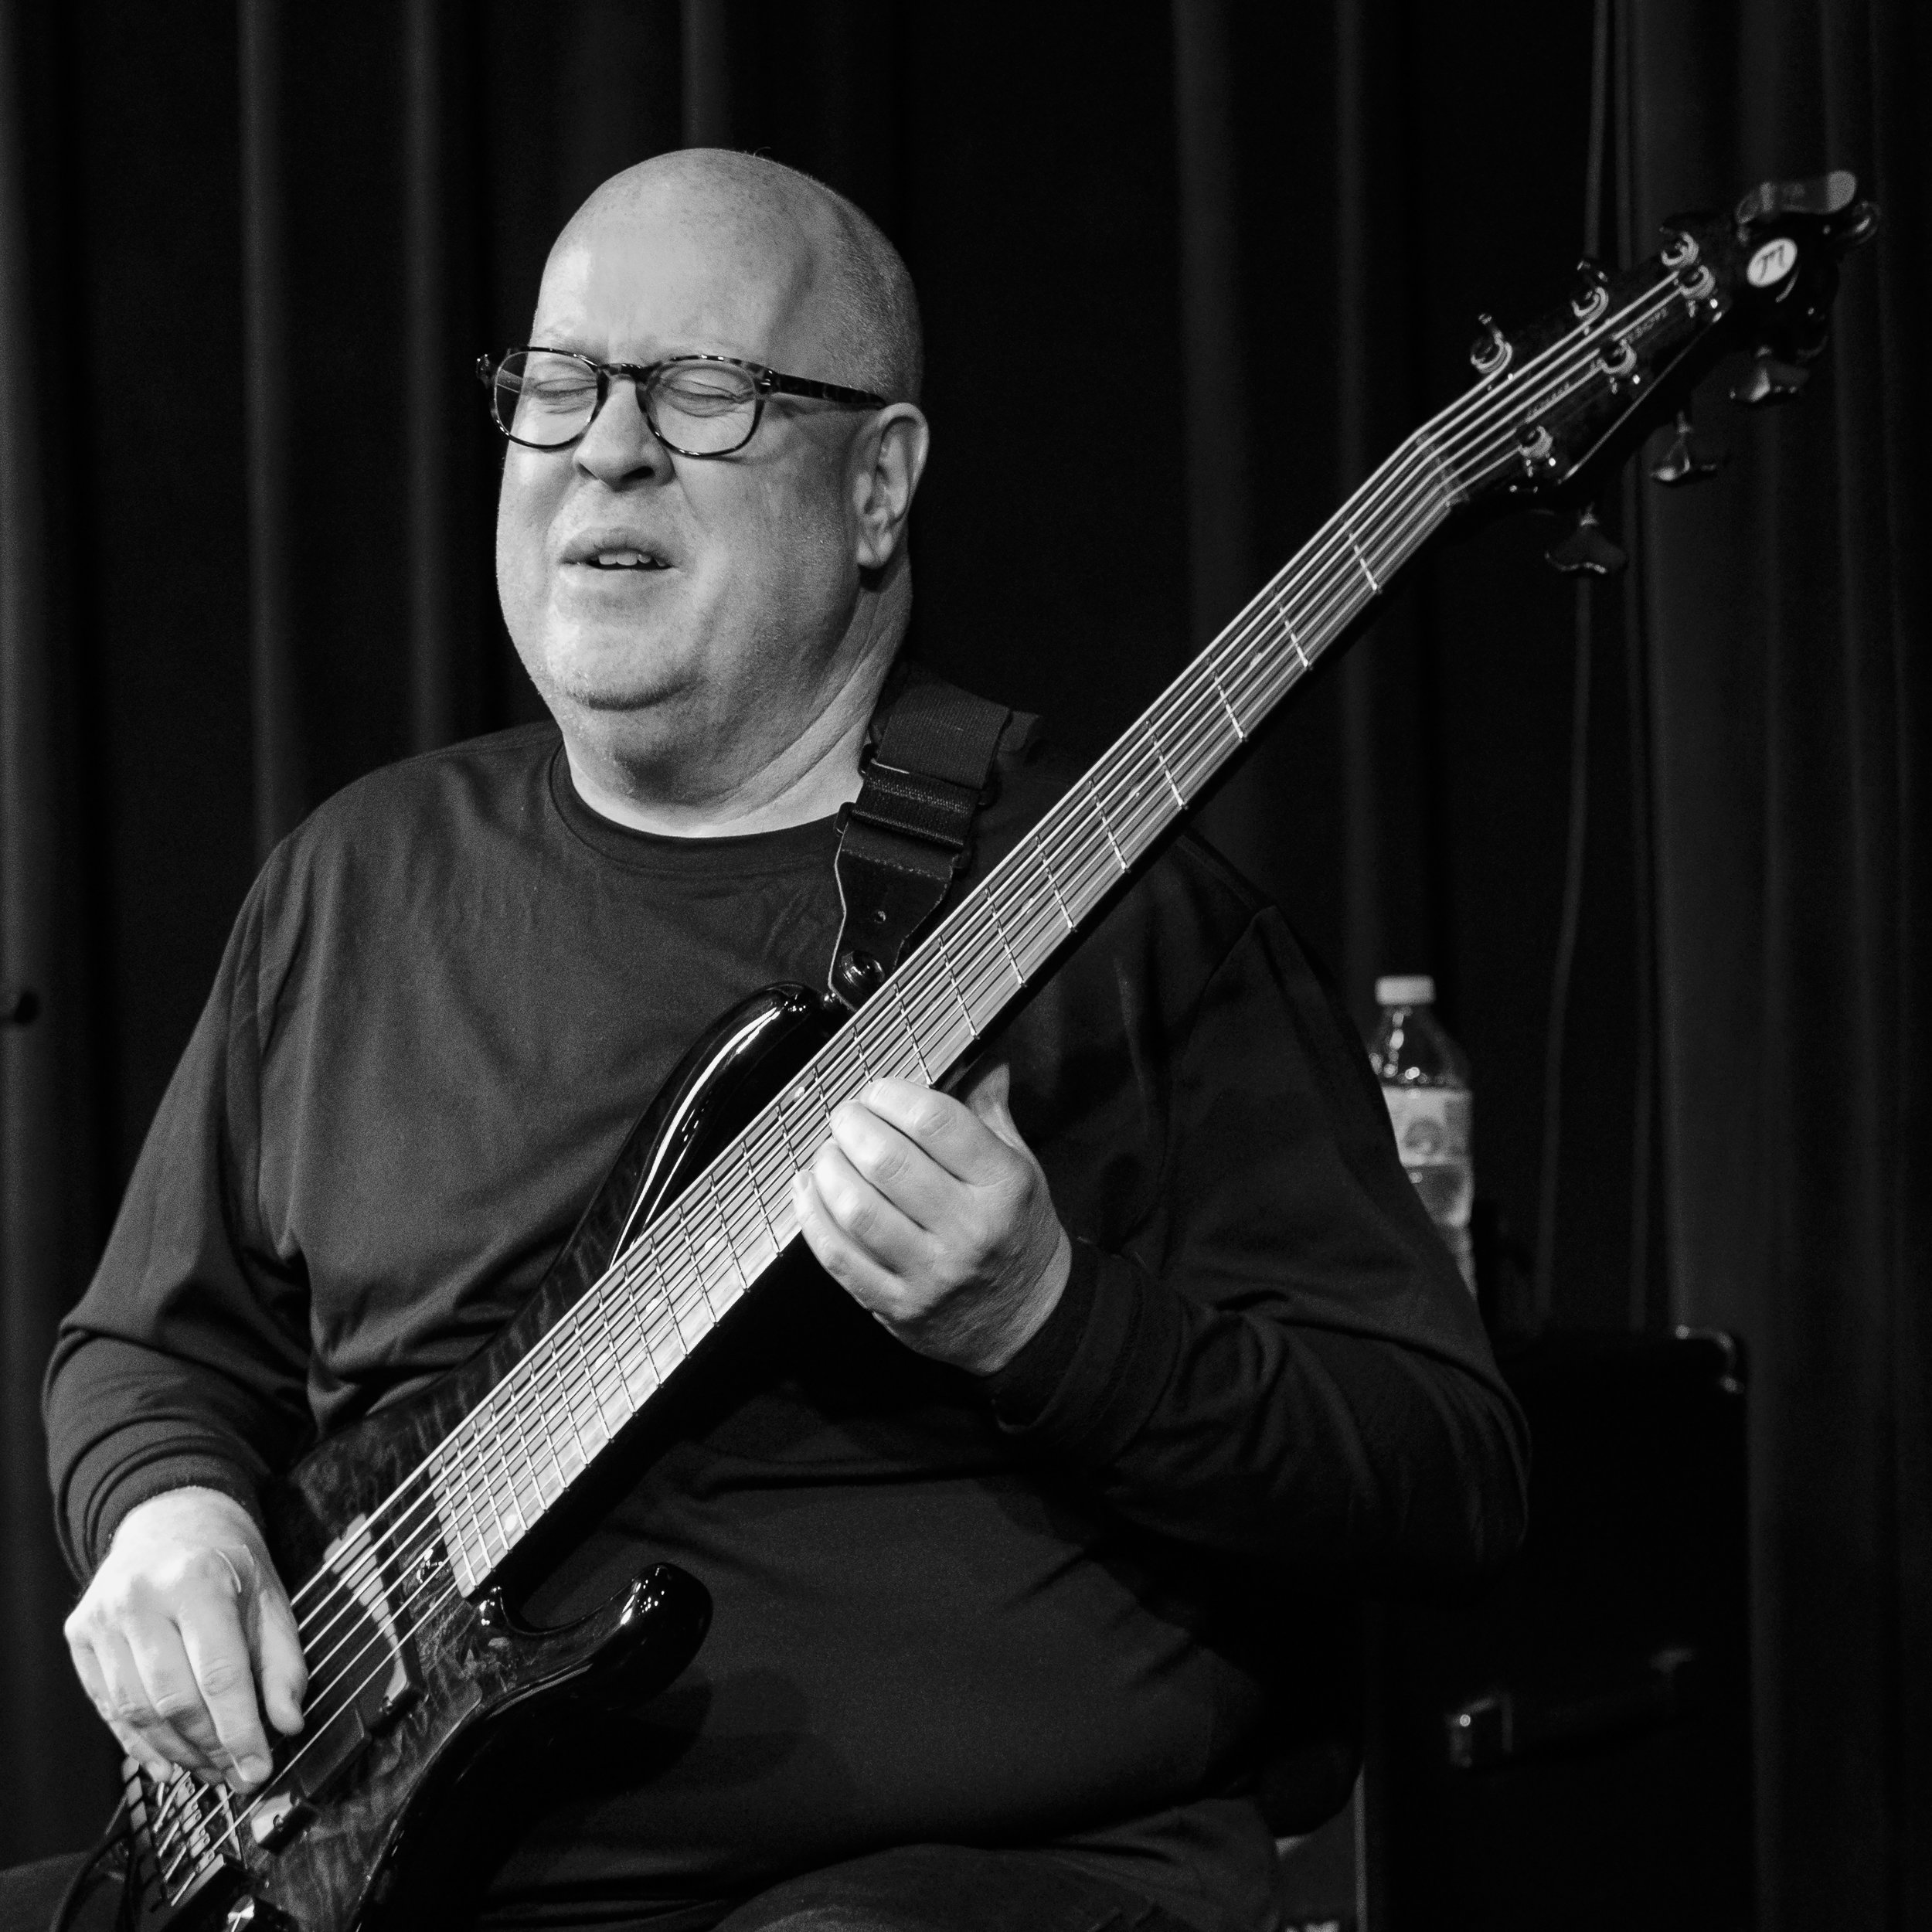 Todd Johnson on Bass